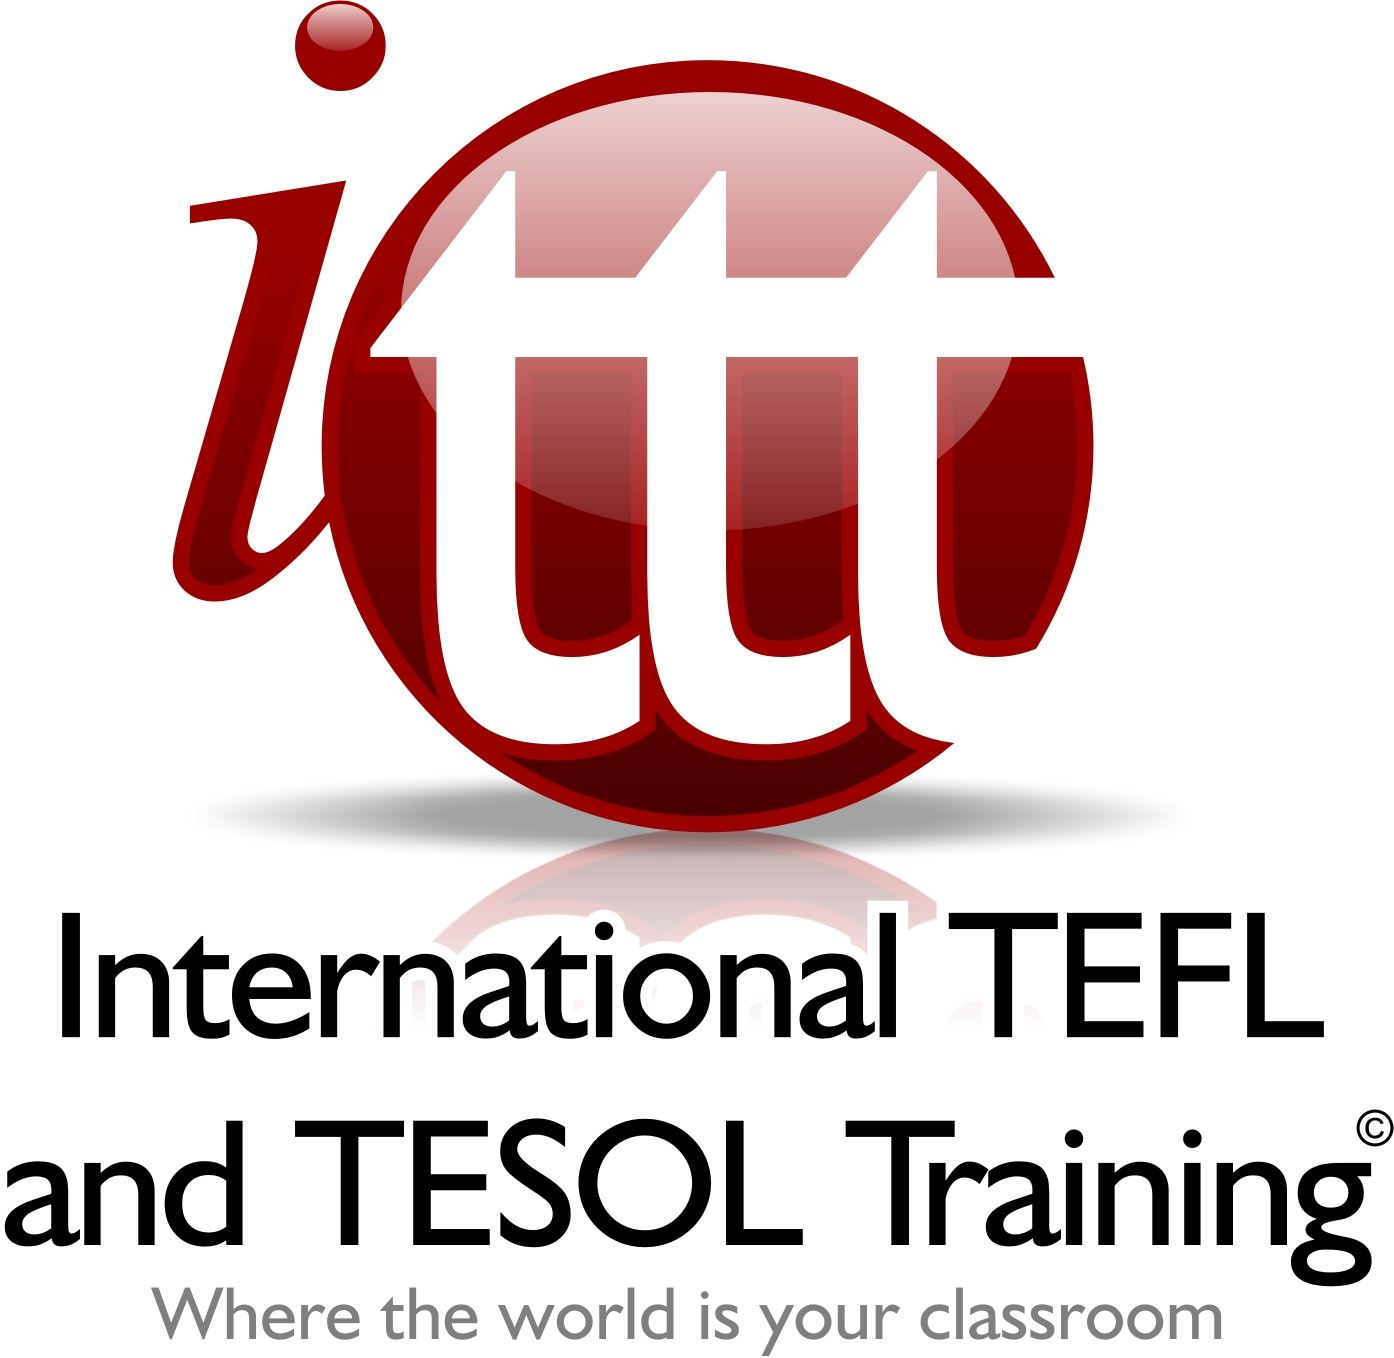 Read tefl corp Reviews